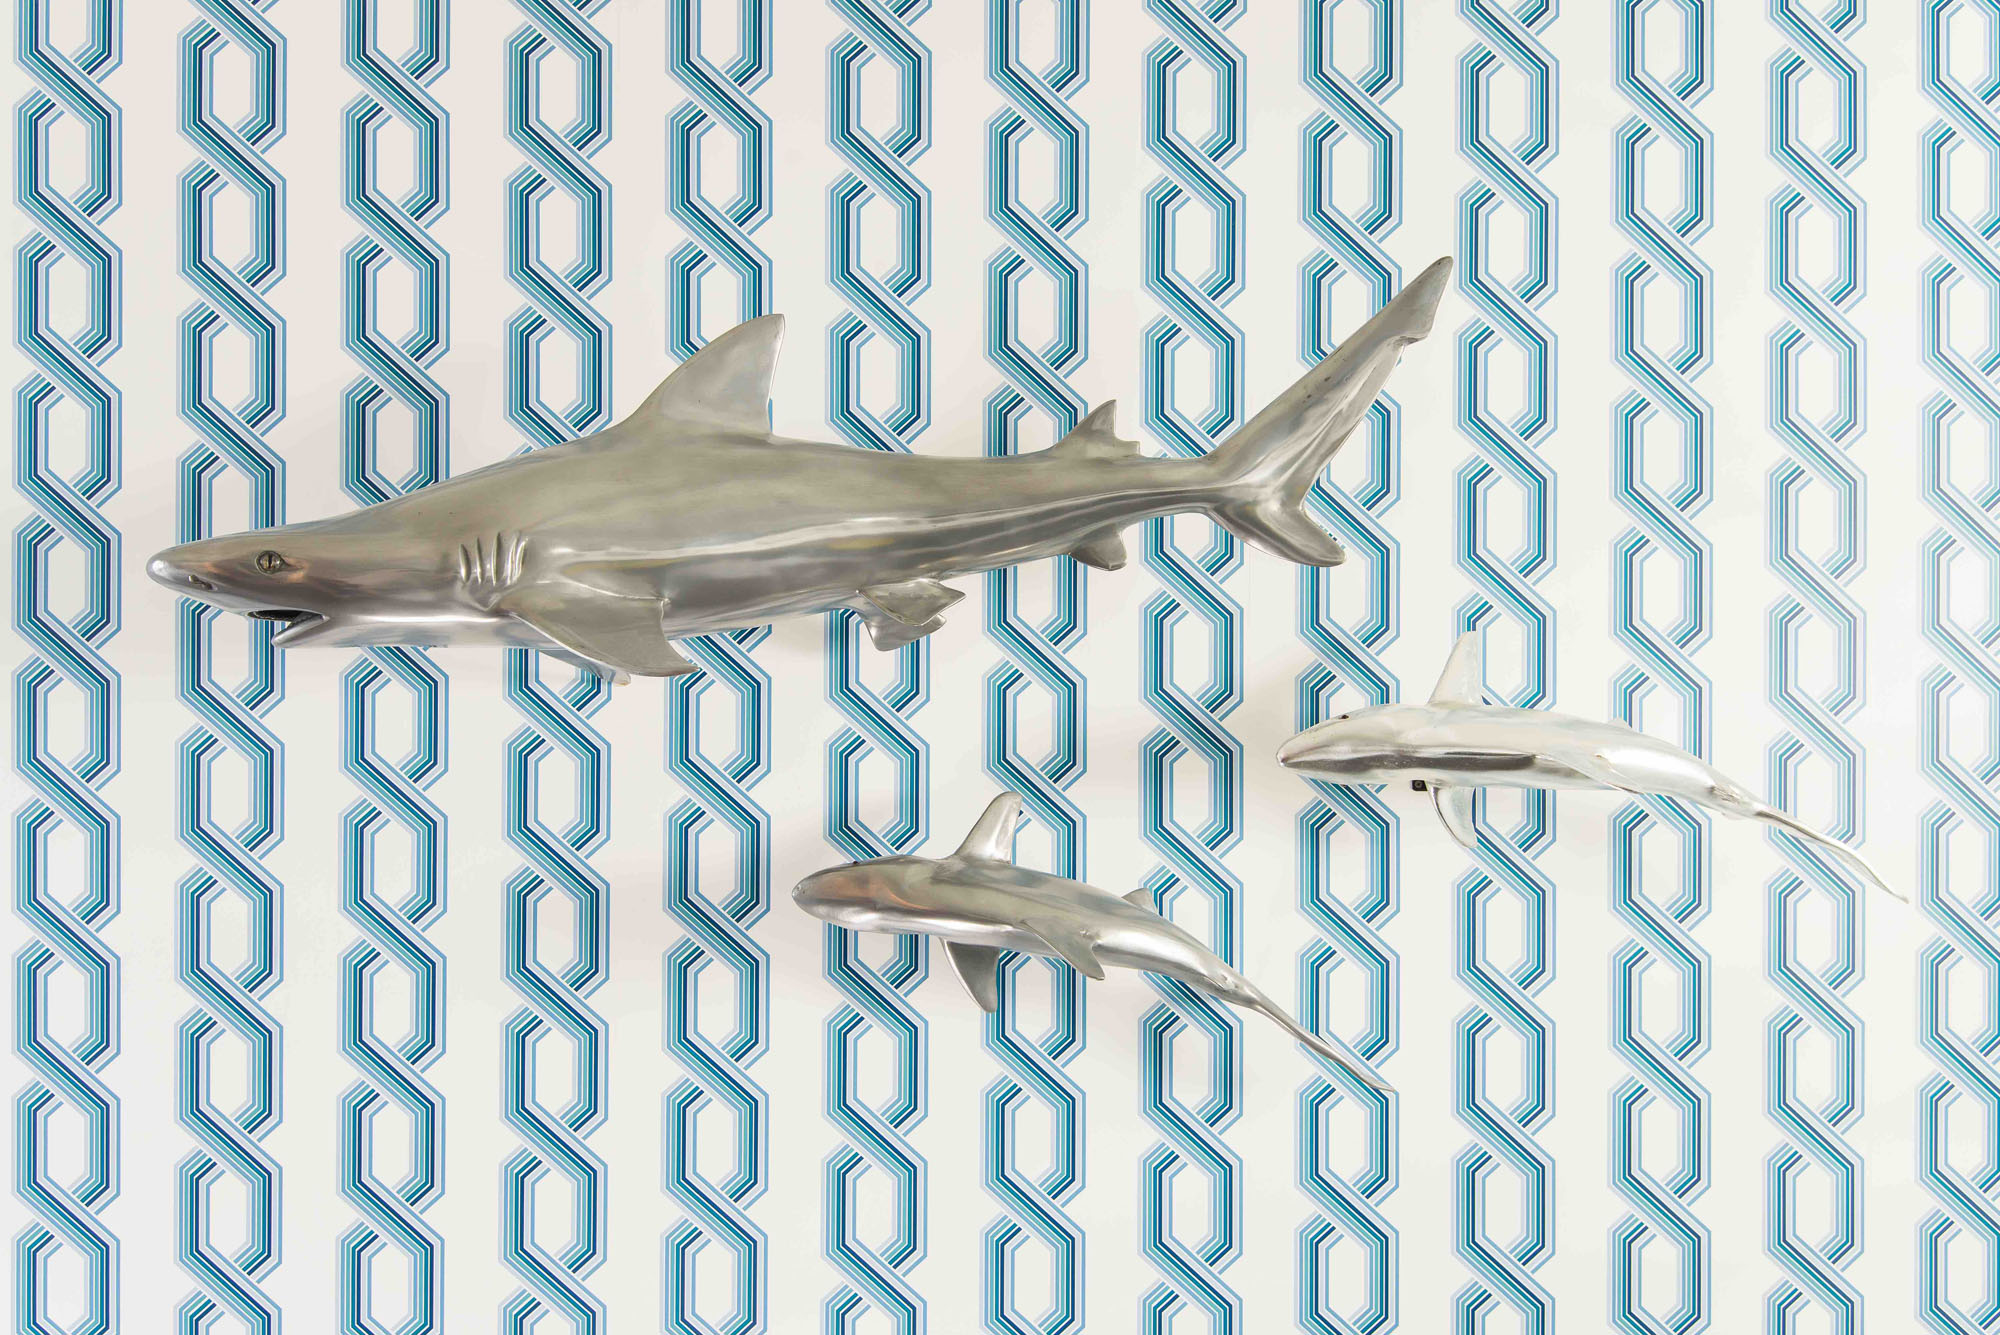 Shark Art Melissa Morgan Design